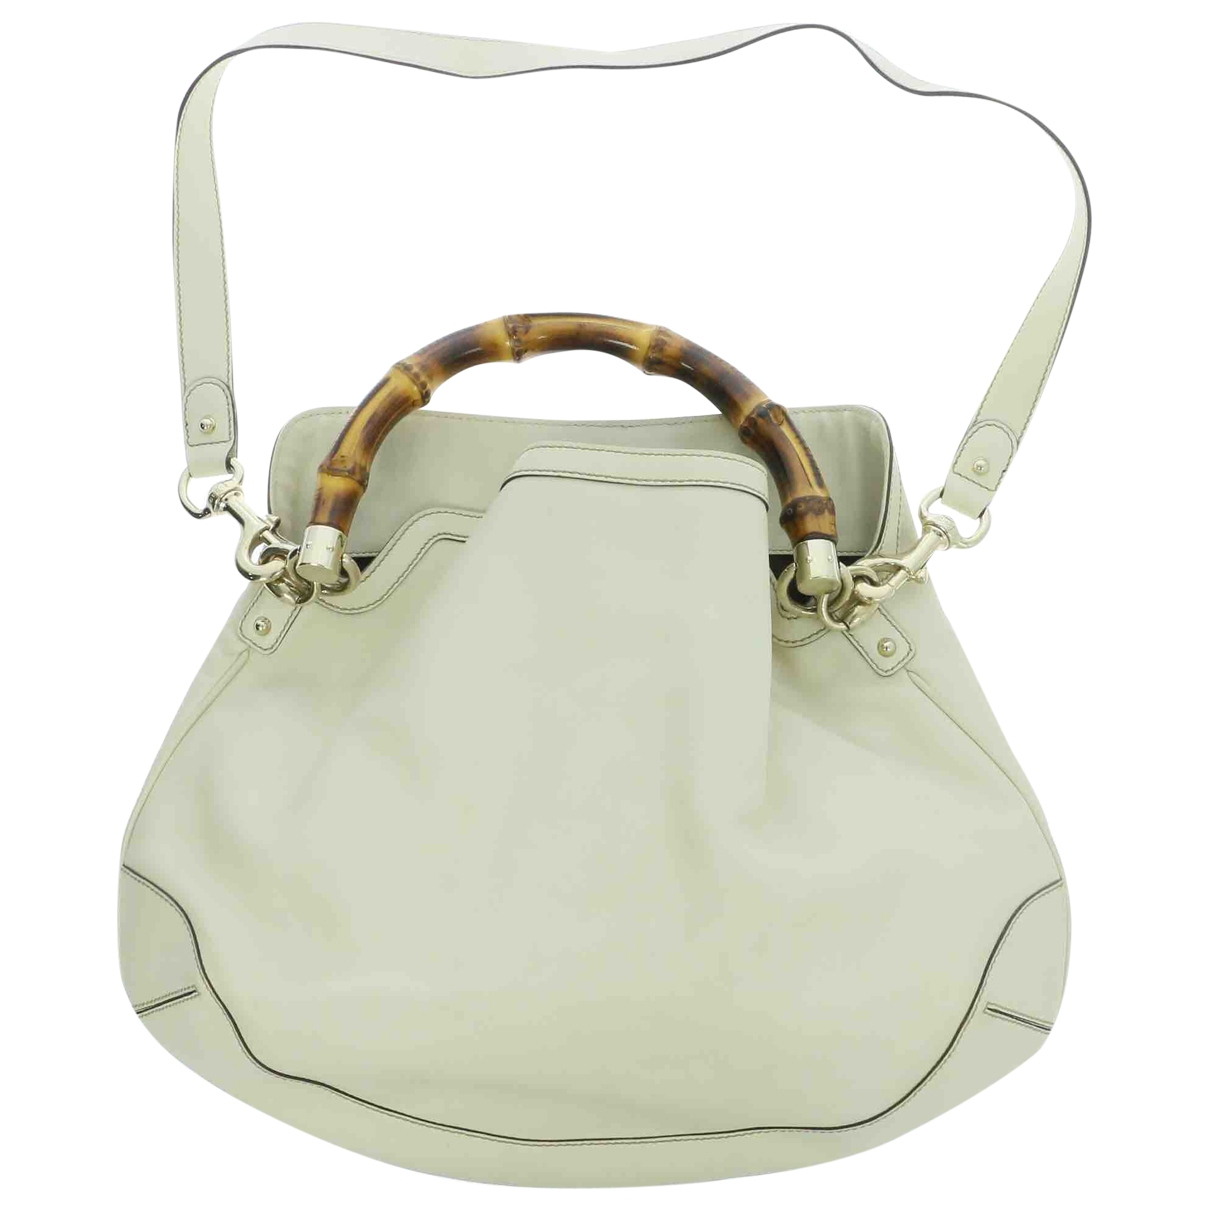 Gucci Bamboo Beige Leather handbag for Women \N